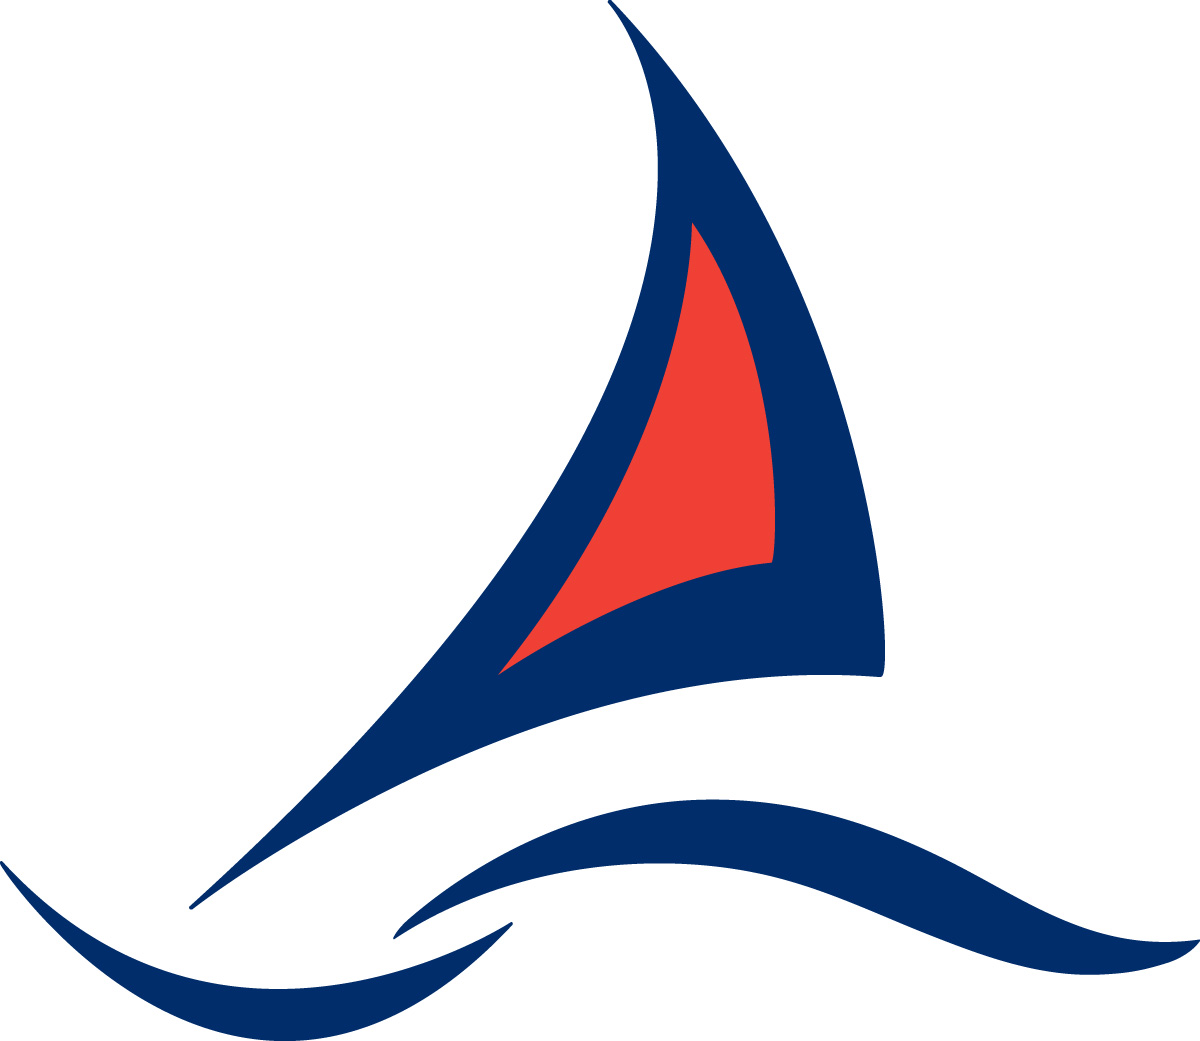 Sailboat Logo Images - Reverse Search